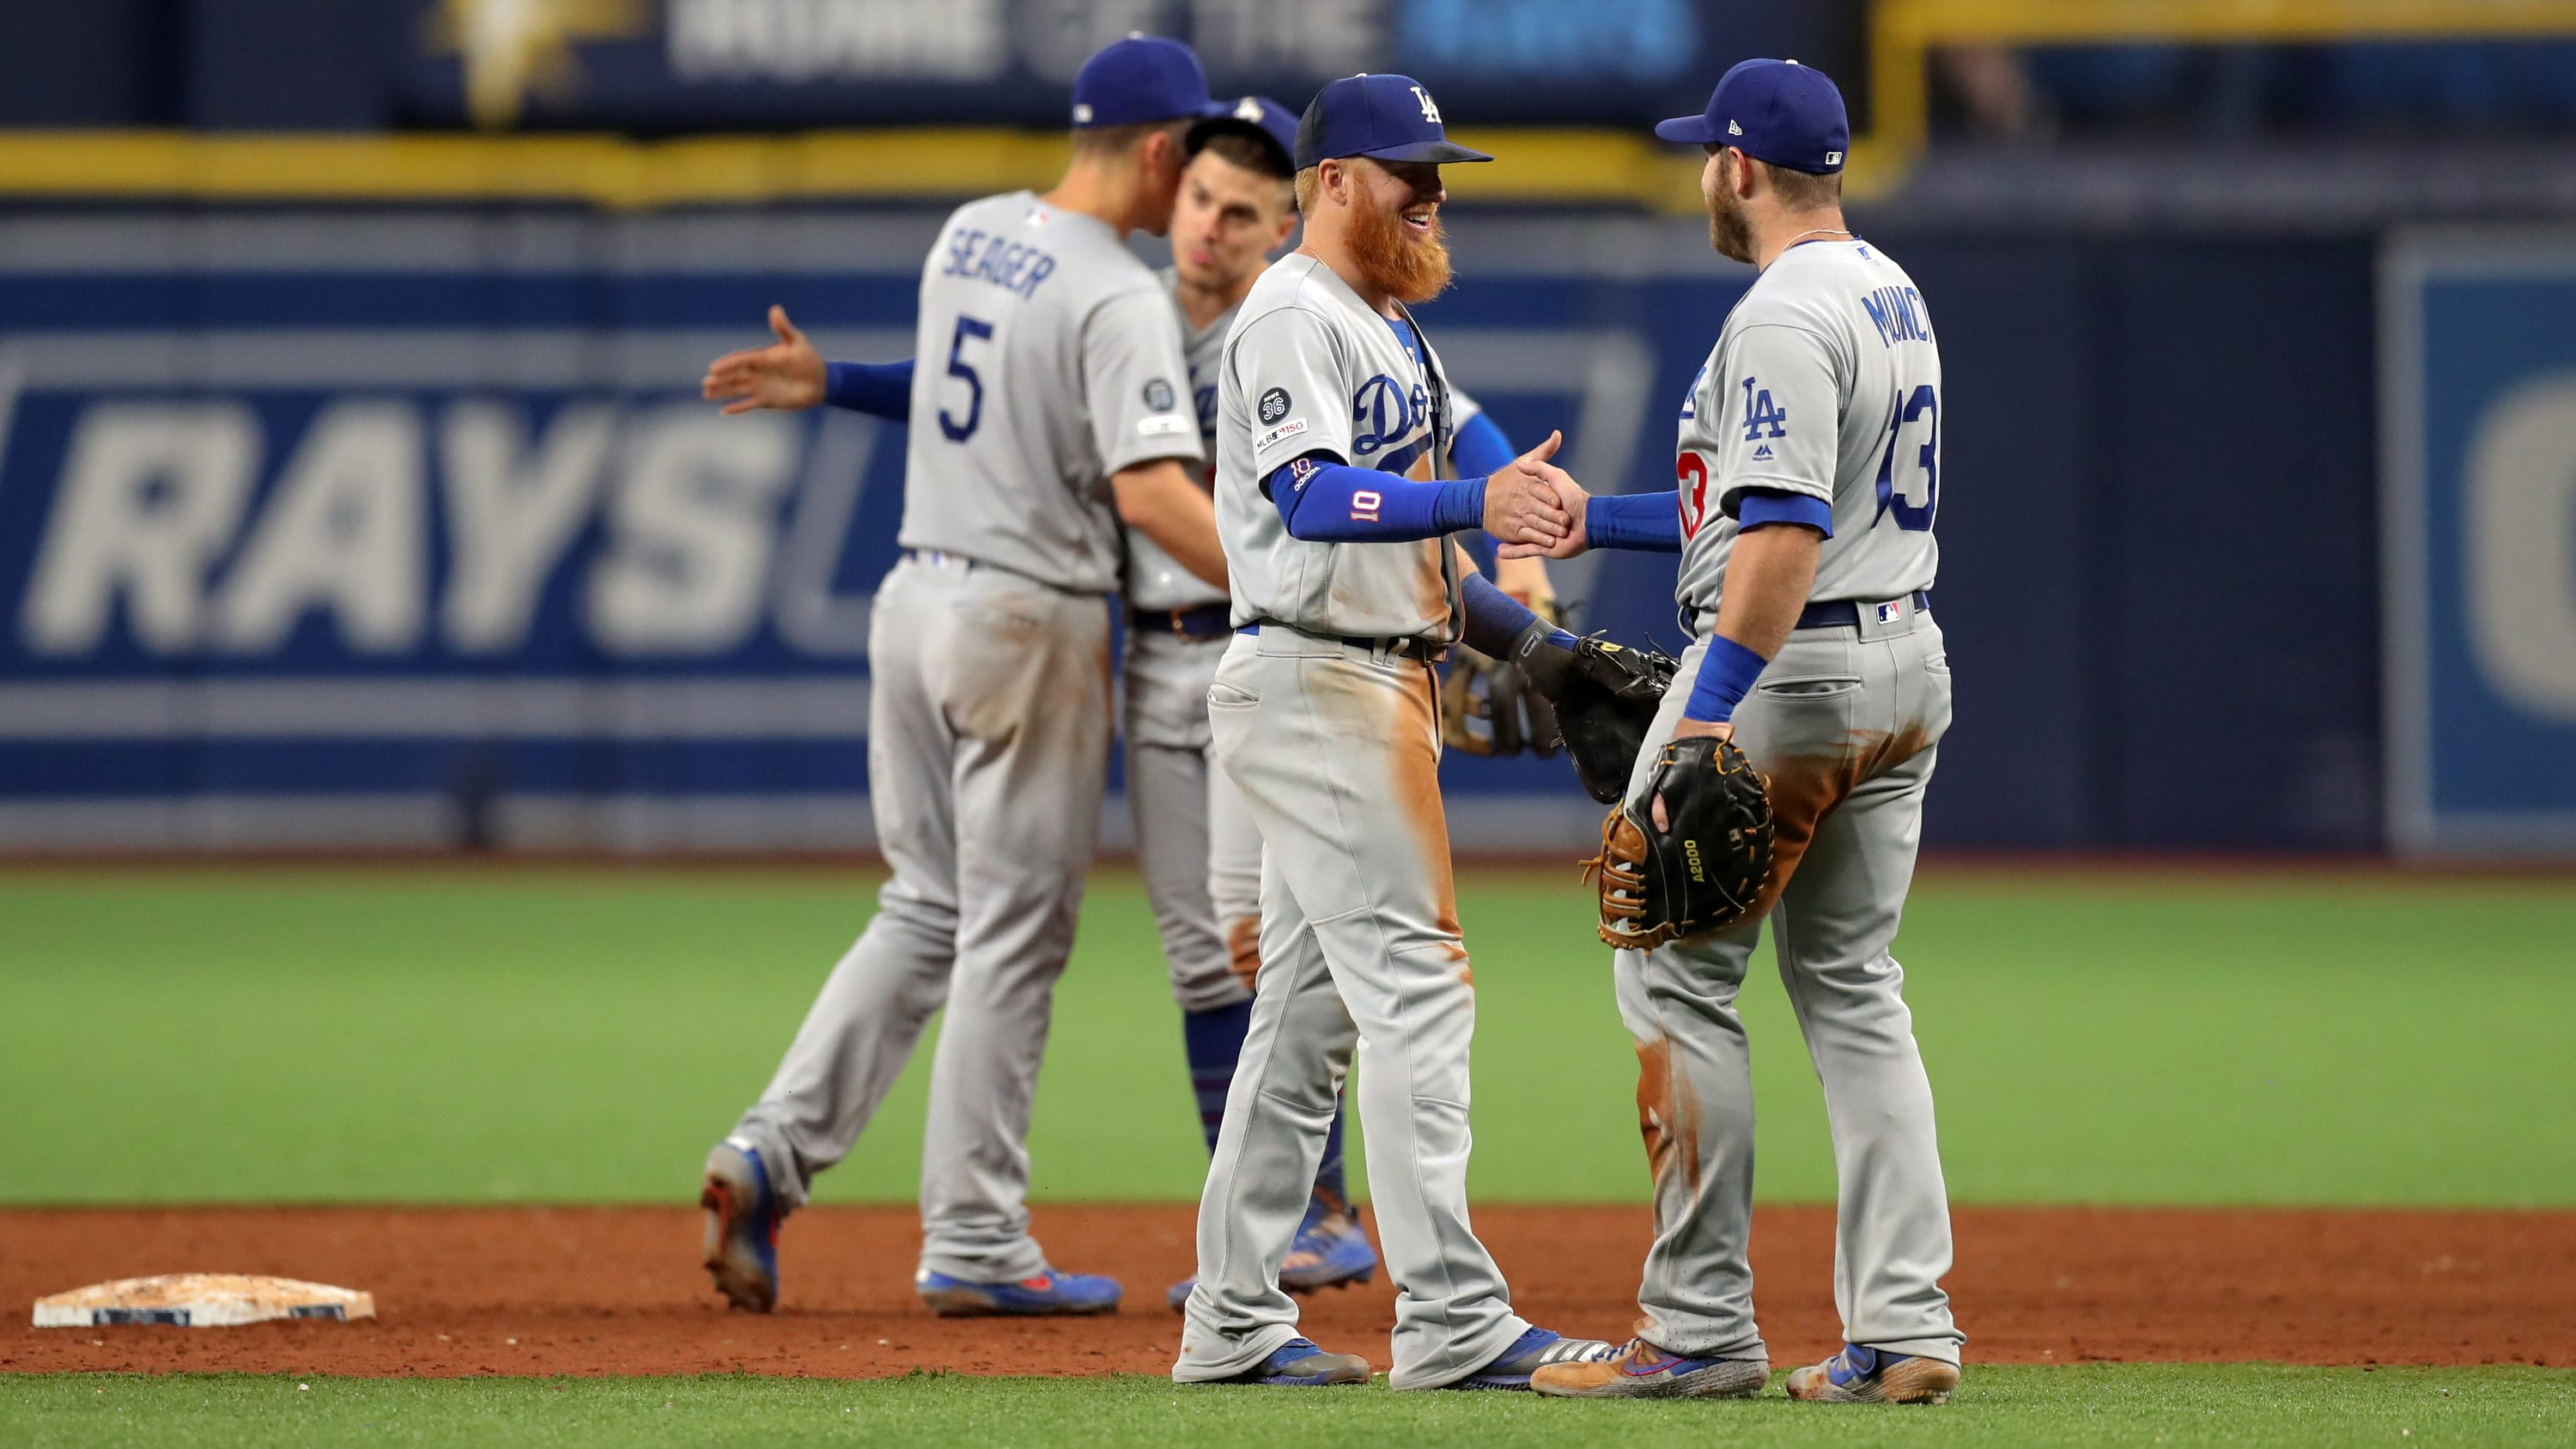 ST. PETERSBURG, FL - MAY 21:  Corey Seager #5, Justin Turner #10 and Max Muncy #13 of the Los Angeles Dodgers celebrate a win over the Tampa Bay Rays at Tropicana Field on May 21, 2019 in St. Petersburg, Florida. (Photo by Mike Carlson/Getty Images)